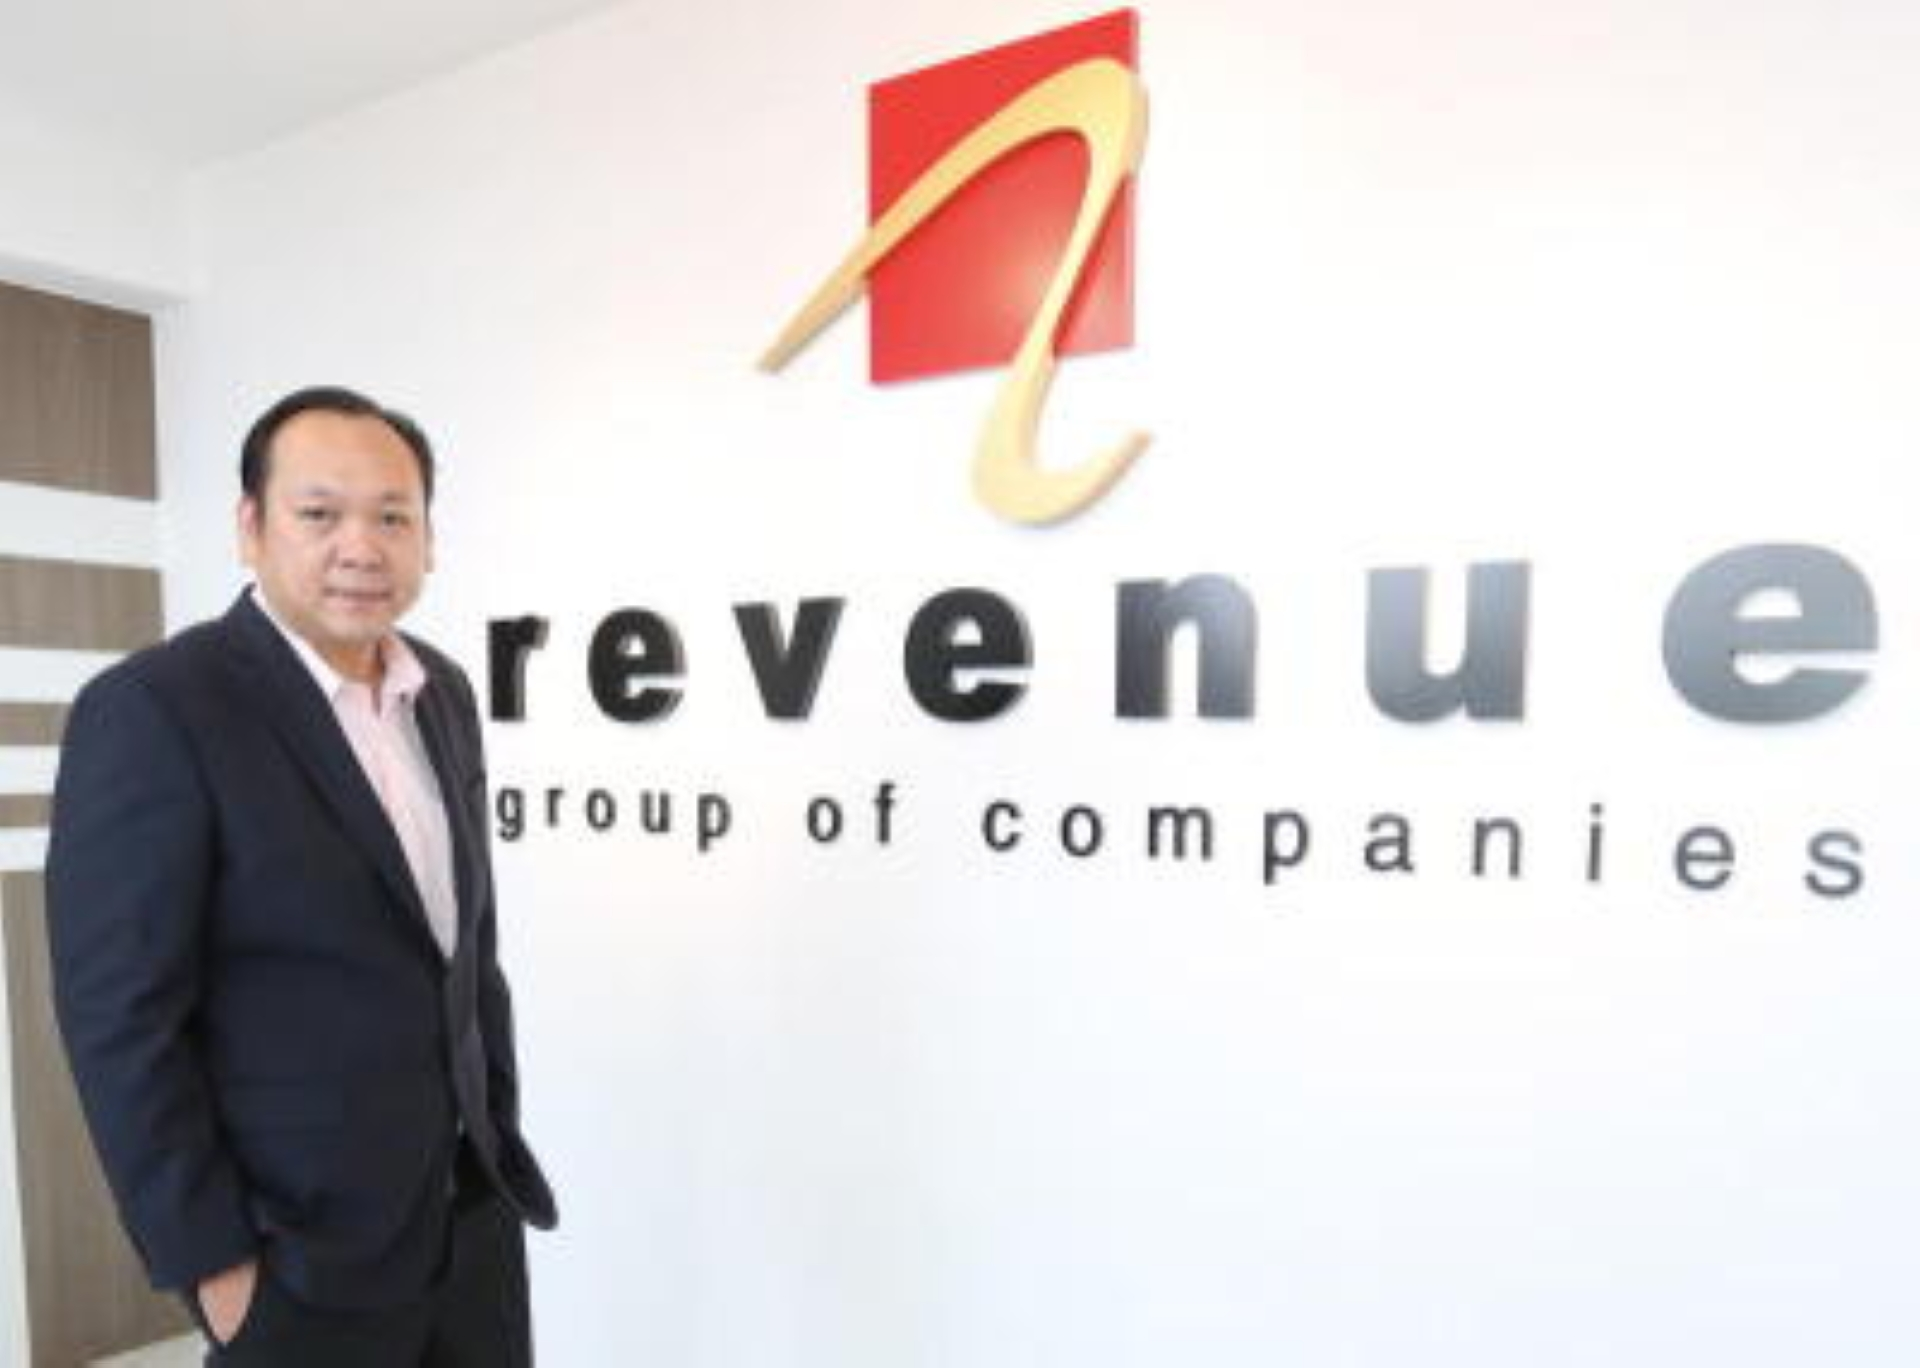 Revenue Group Bhd managing director and group CEO Eddie Ng Chee Siong said the company's all-in-one digital payment terminals can handle a myriad mobile Quick Response (QR) code payment services. The services, which include Alipay, Boost, Touch 'n Go, UnionPay and WeChat Pay, as well as MasterCard, MyDebit, JCB and Visa, make payment management simpler and more efficient for physical retail merchants.